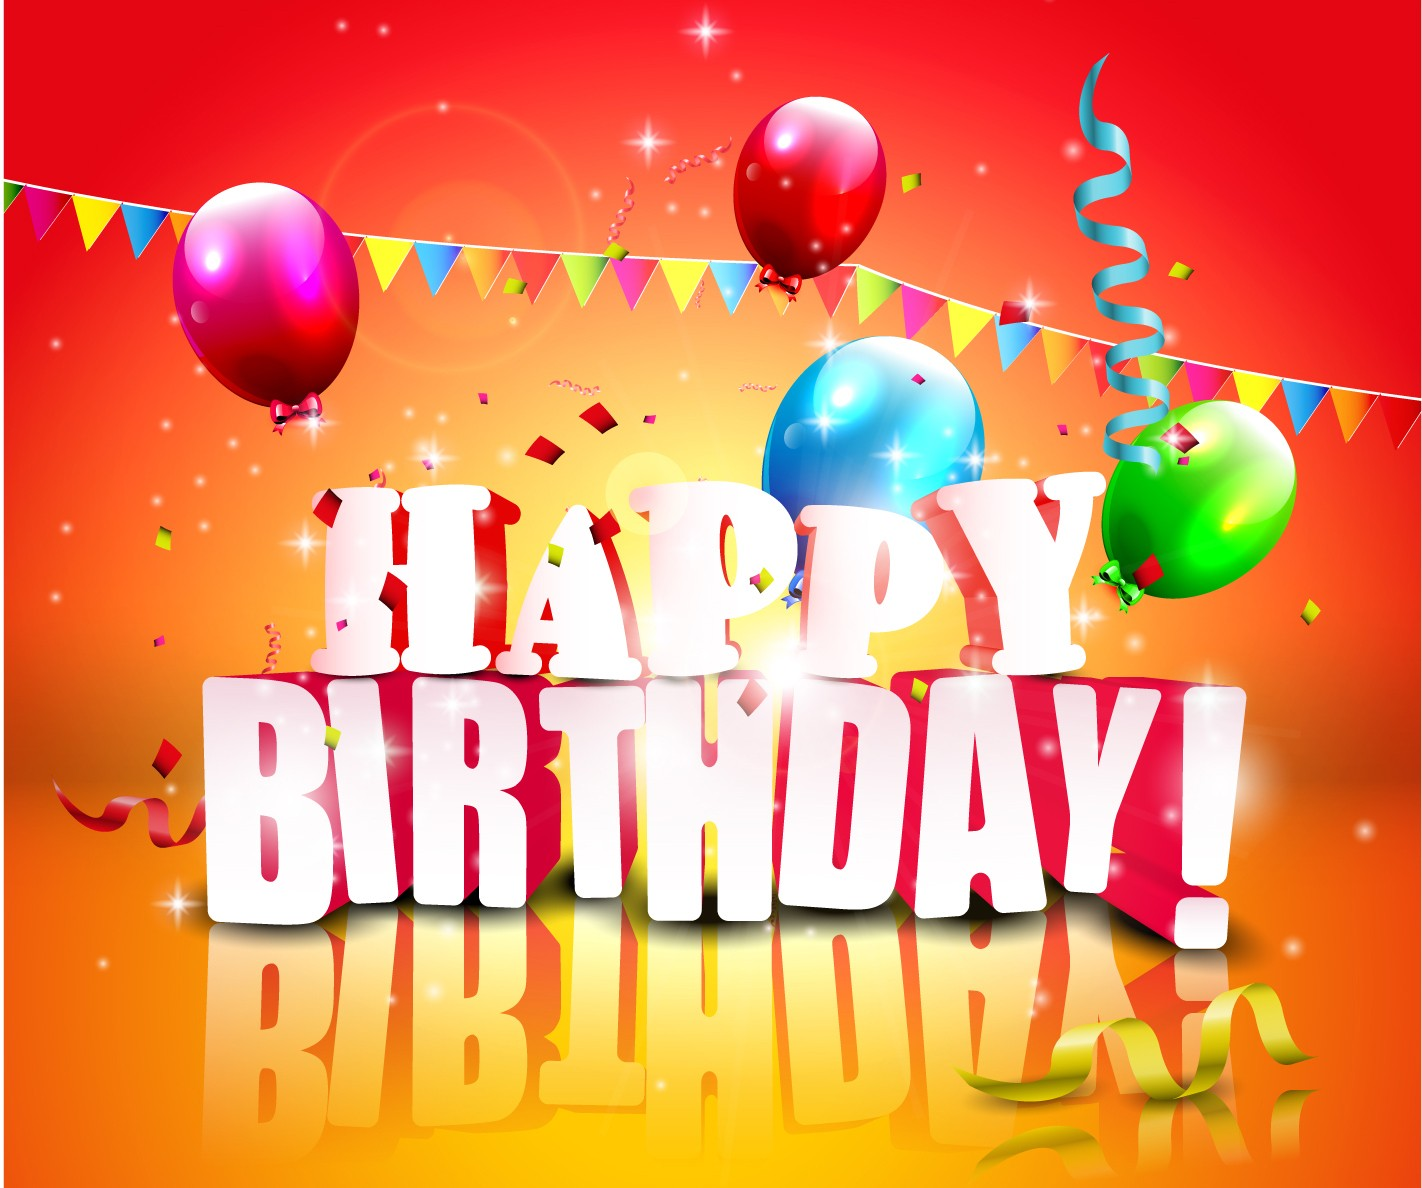 birthday greeting card images free ; pics-of-birthday-cards-Swipe-left-right-to-see-more-a-special-person-white-letters-happy-birthdays-colorful-balloons-metalic-orange-background